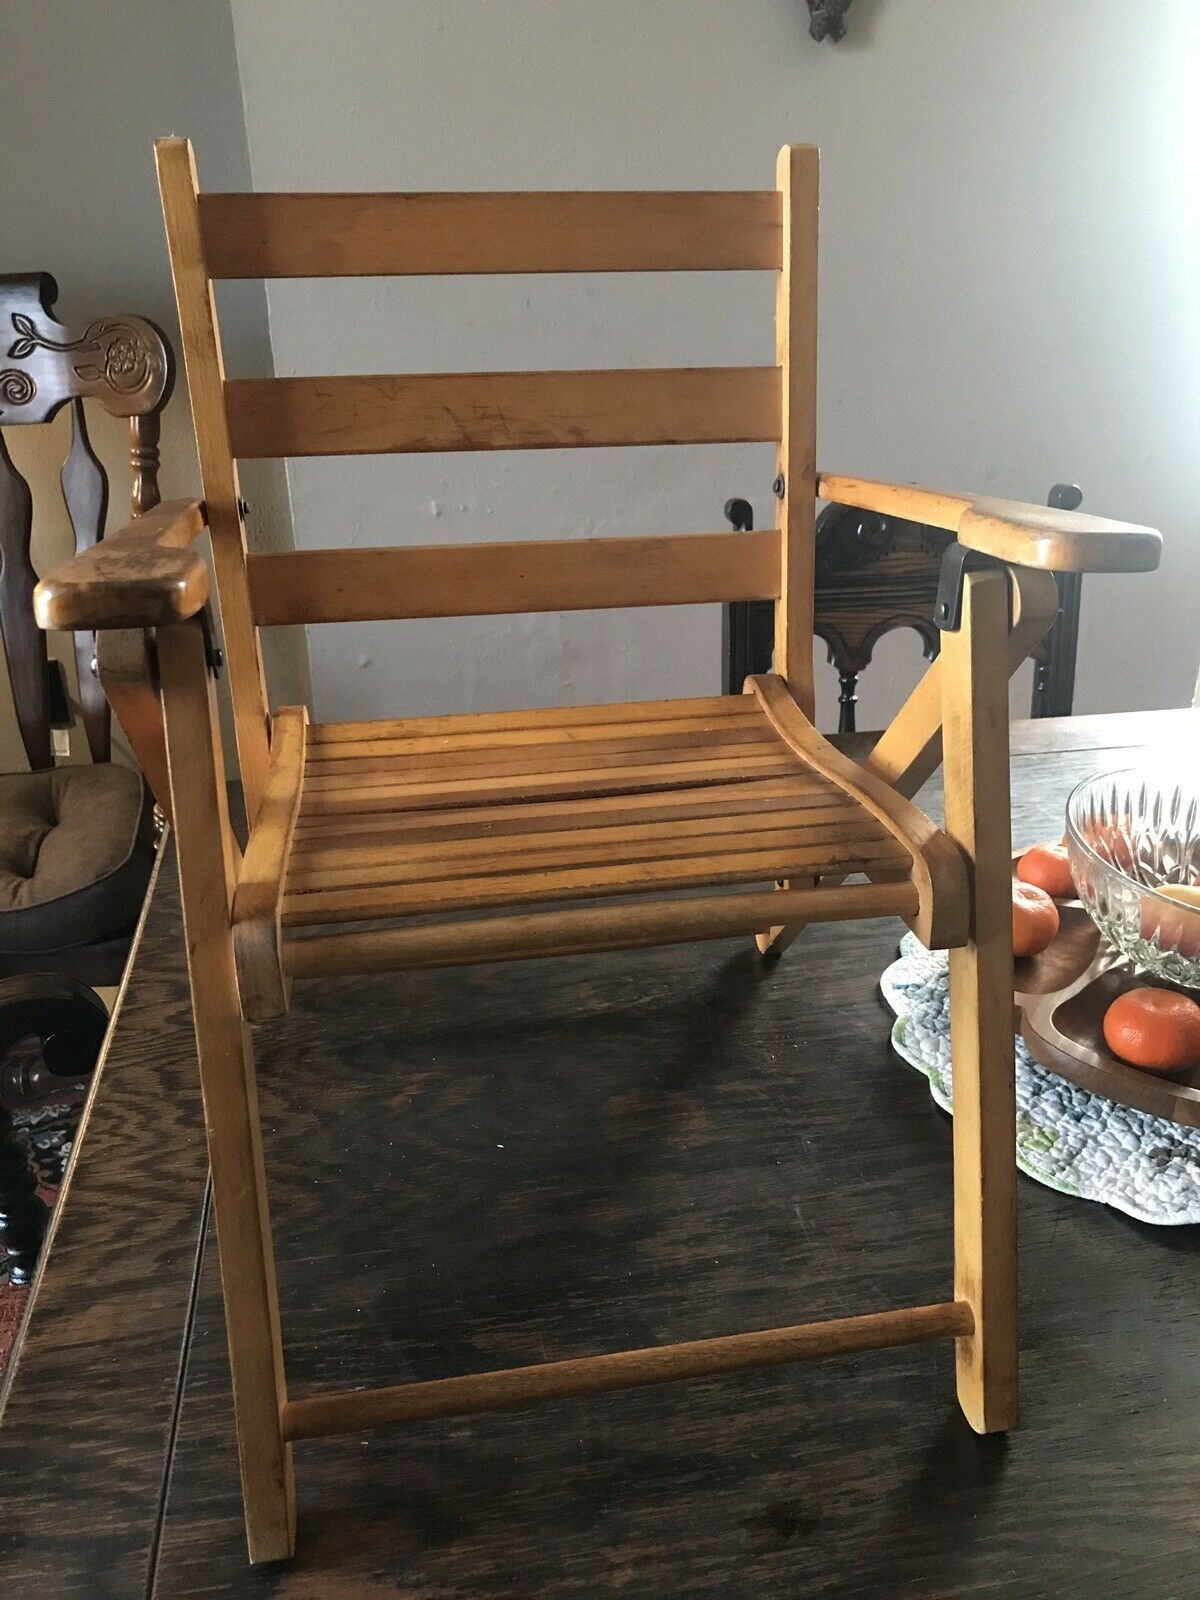 Enjoyable Details About Vintage Nevco Childrens Wooden Folding Chair Onthecornerstone Fun Painted Chair Ideas Images Onthecornerstoneorg